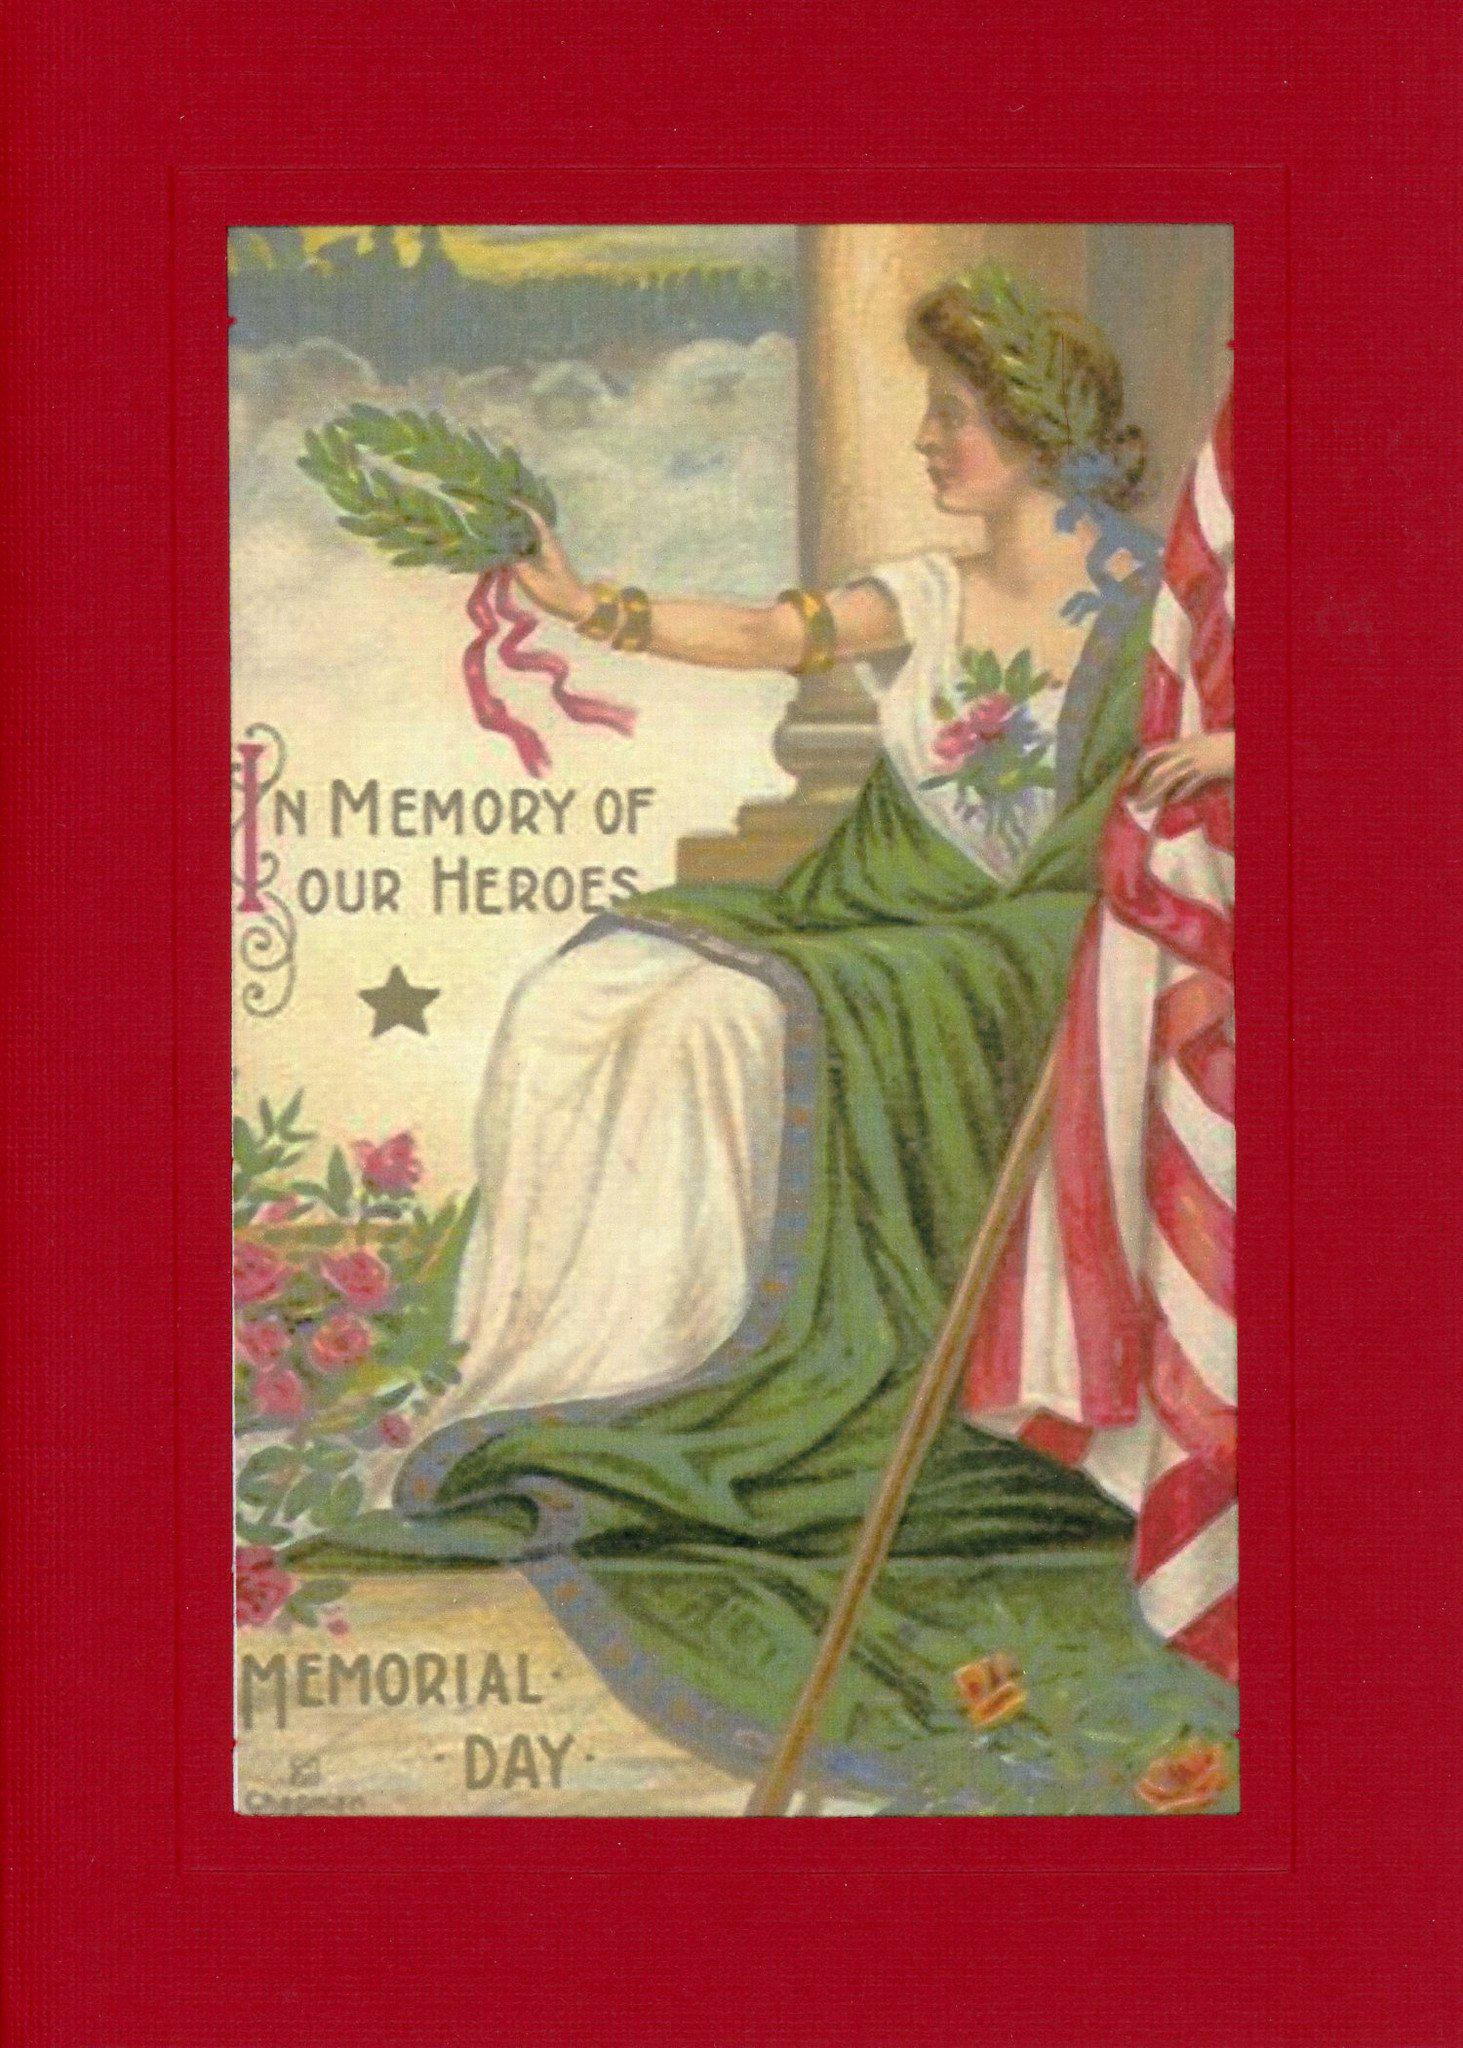 In Memory of Our Heroes-Greetings from the Past-Plymouth Cards